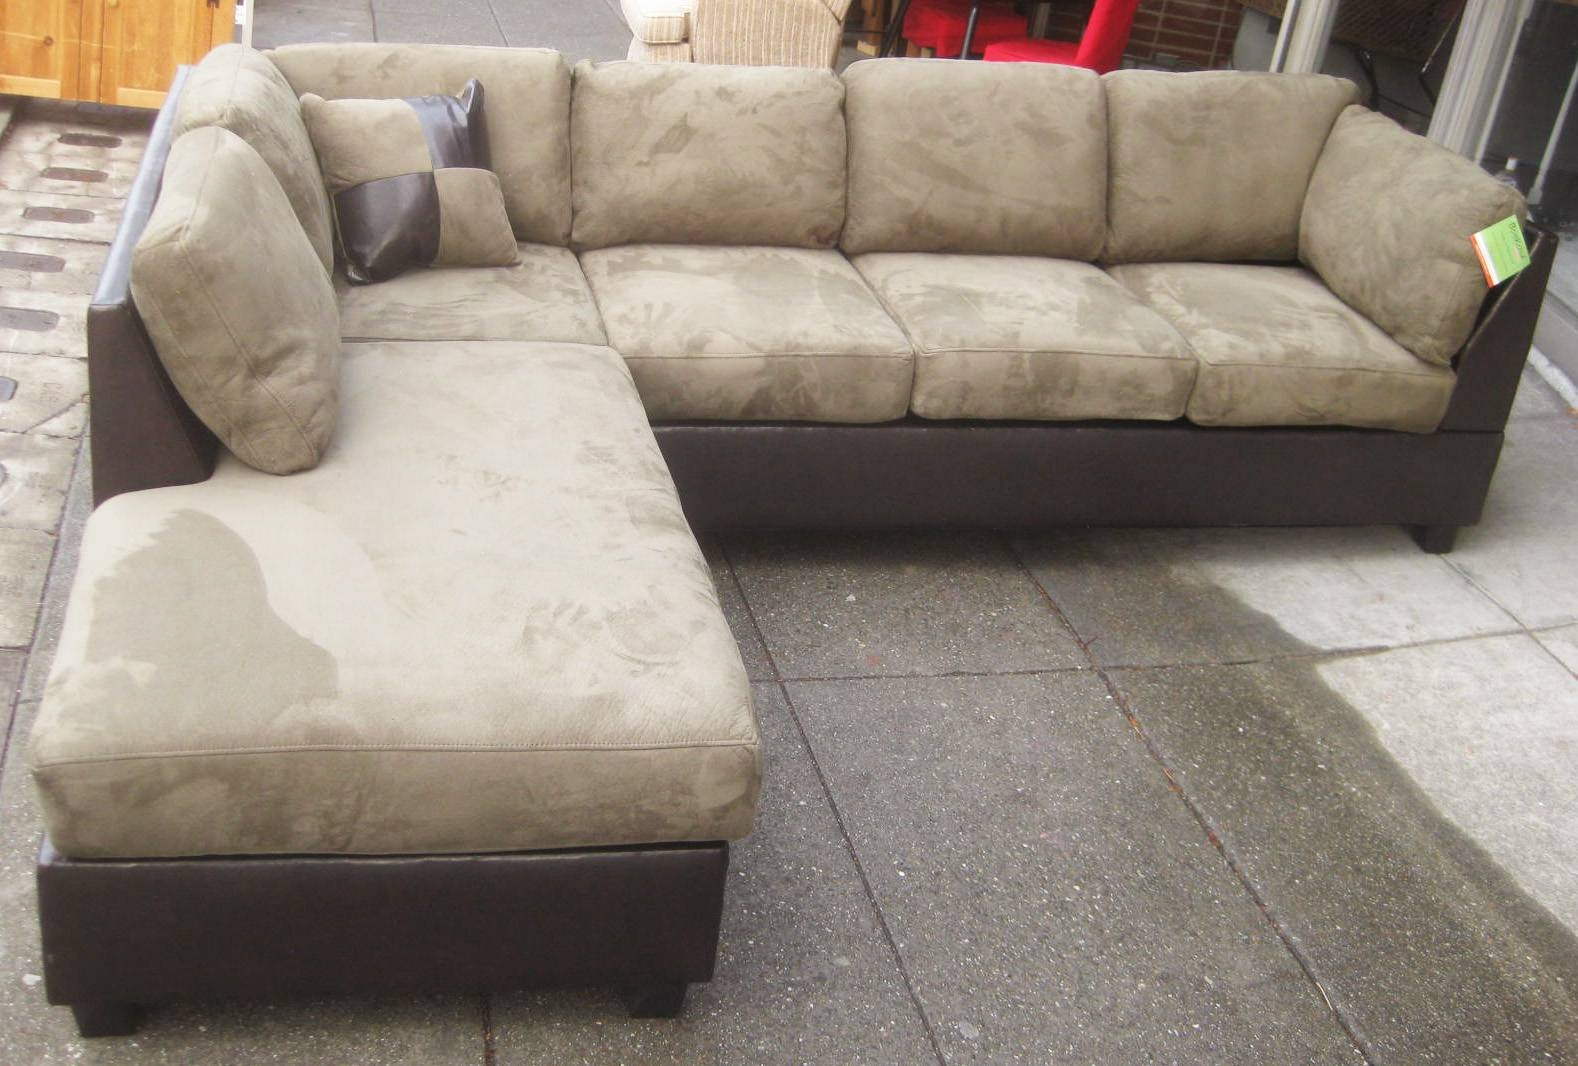 Uhuru Furniture & Collectibles: Sold - Leather & Microsuede for Microsuede Sectional Sofas (Image 29 of 30)